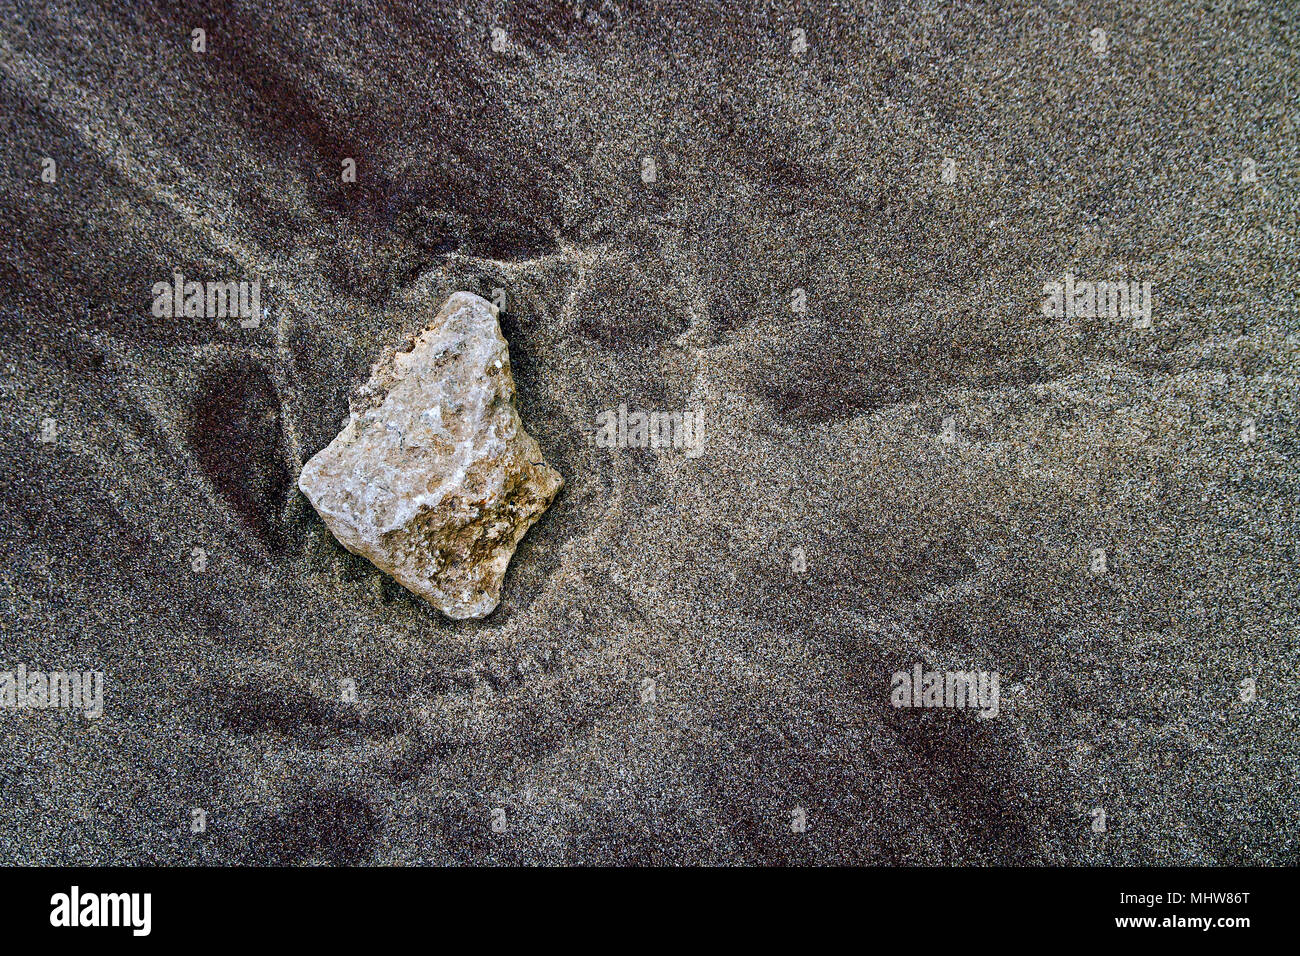 A solitary pebble deposited by the tide on a layer of dark-coloured sand. Stock Photo